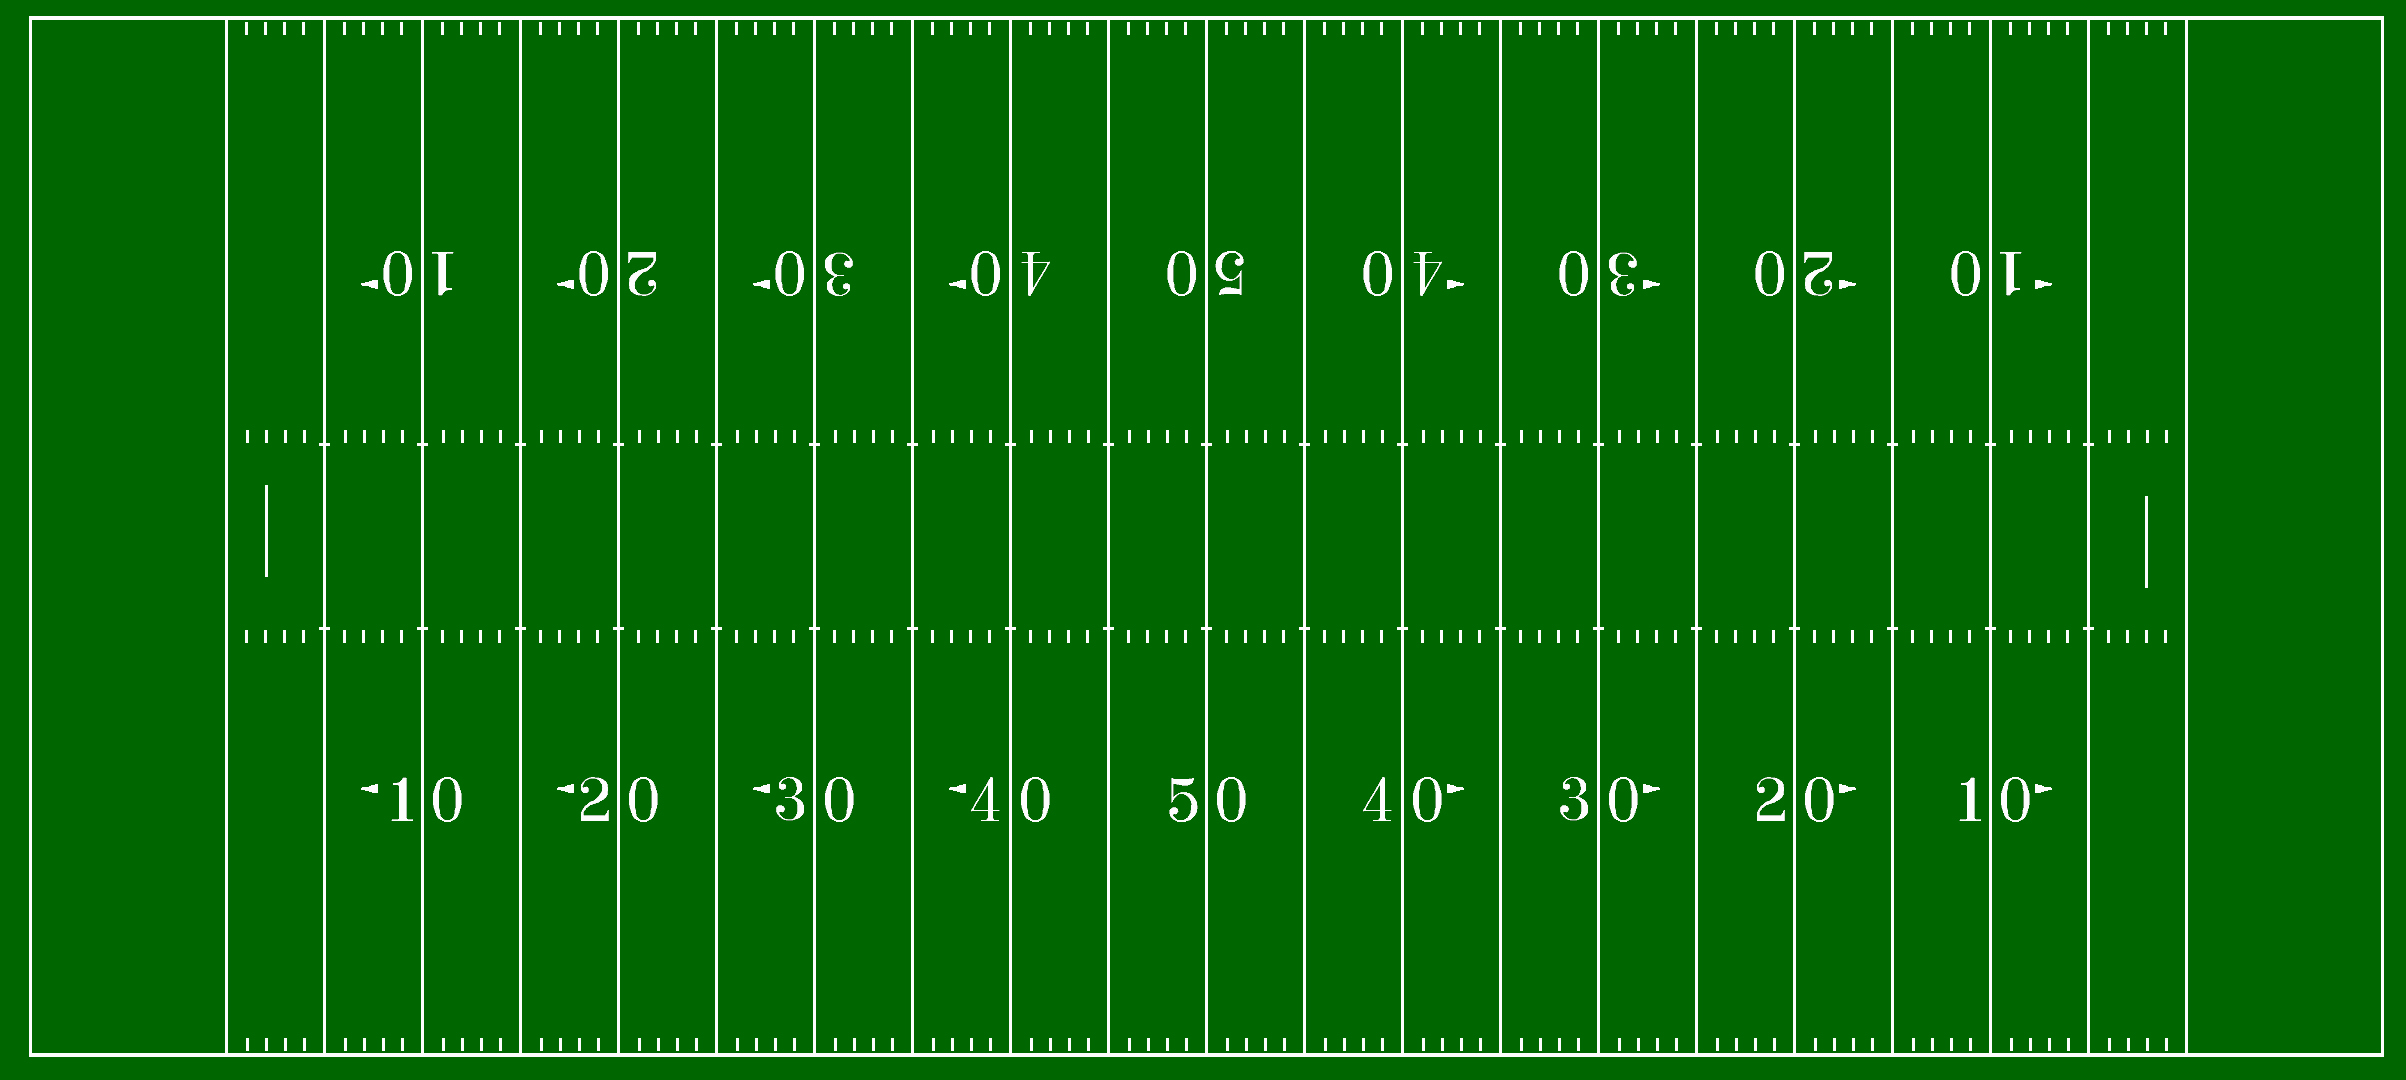 Printable Football Field Template Lovely Nfl Football Field Wallpaper Wallpapersafari